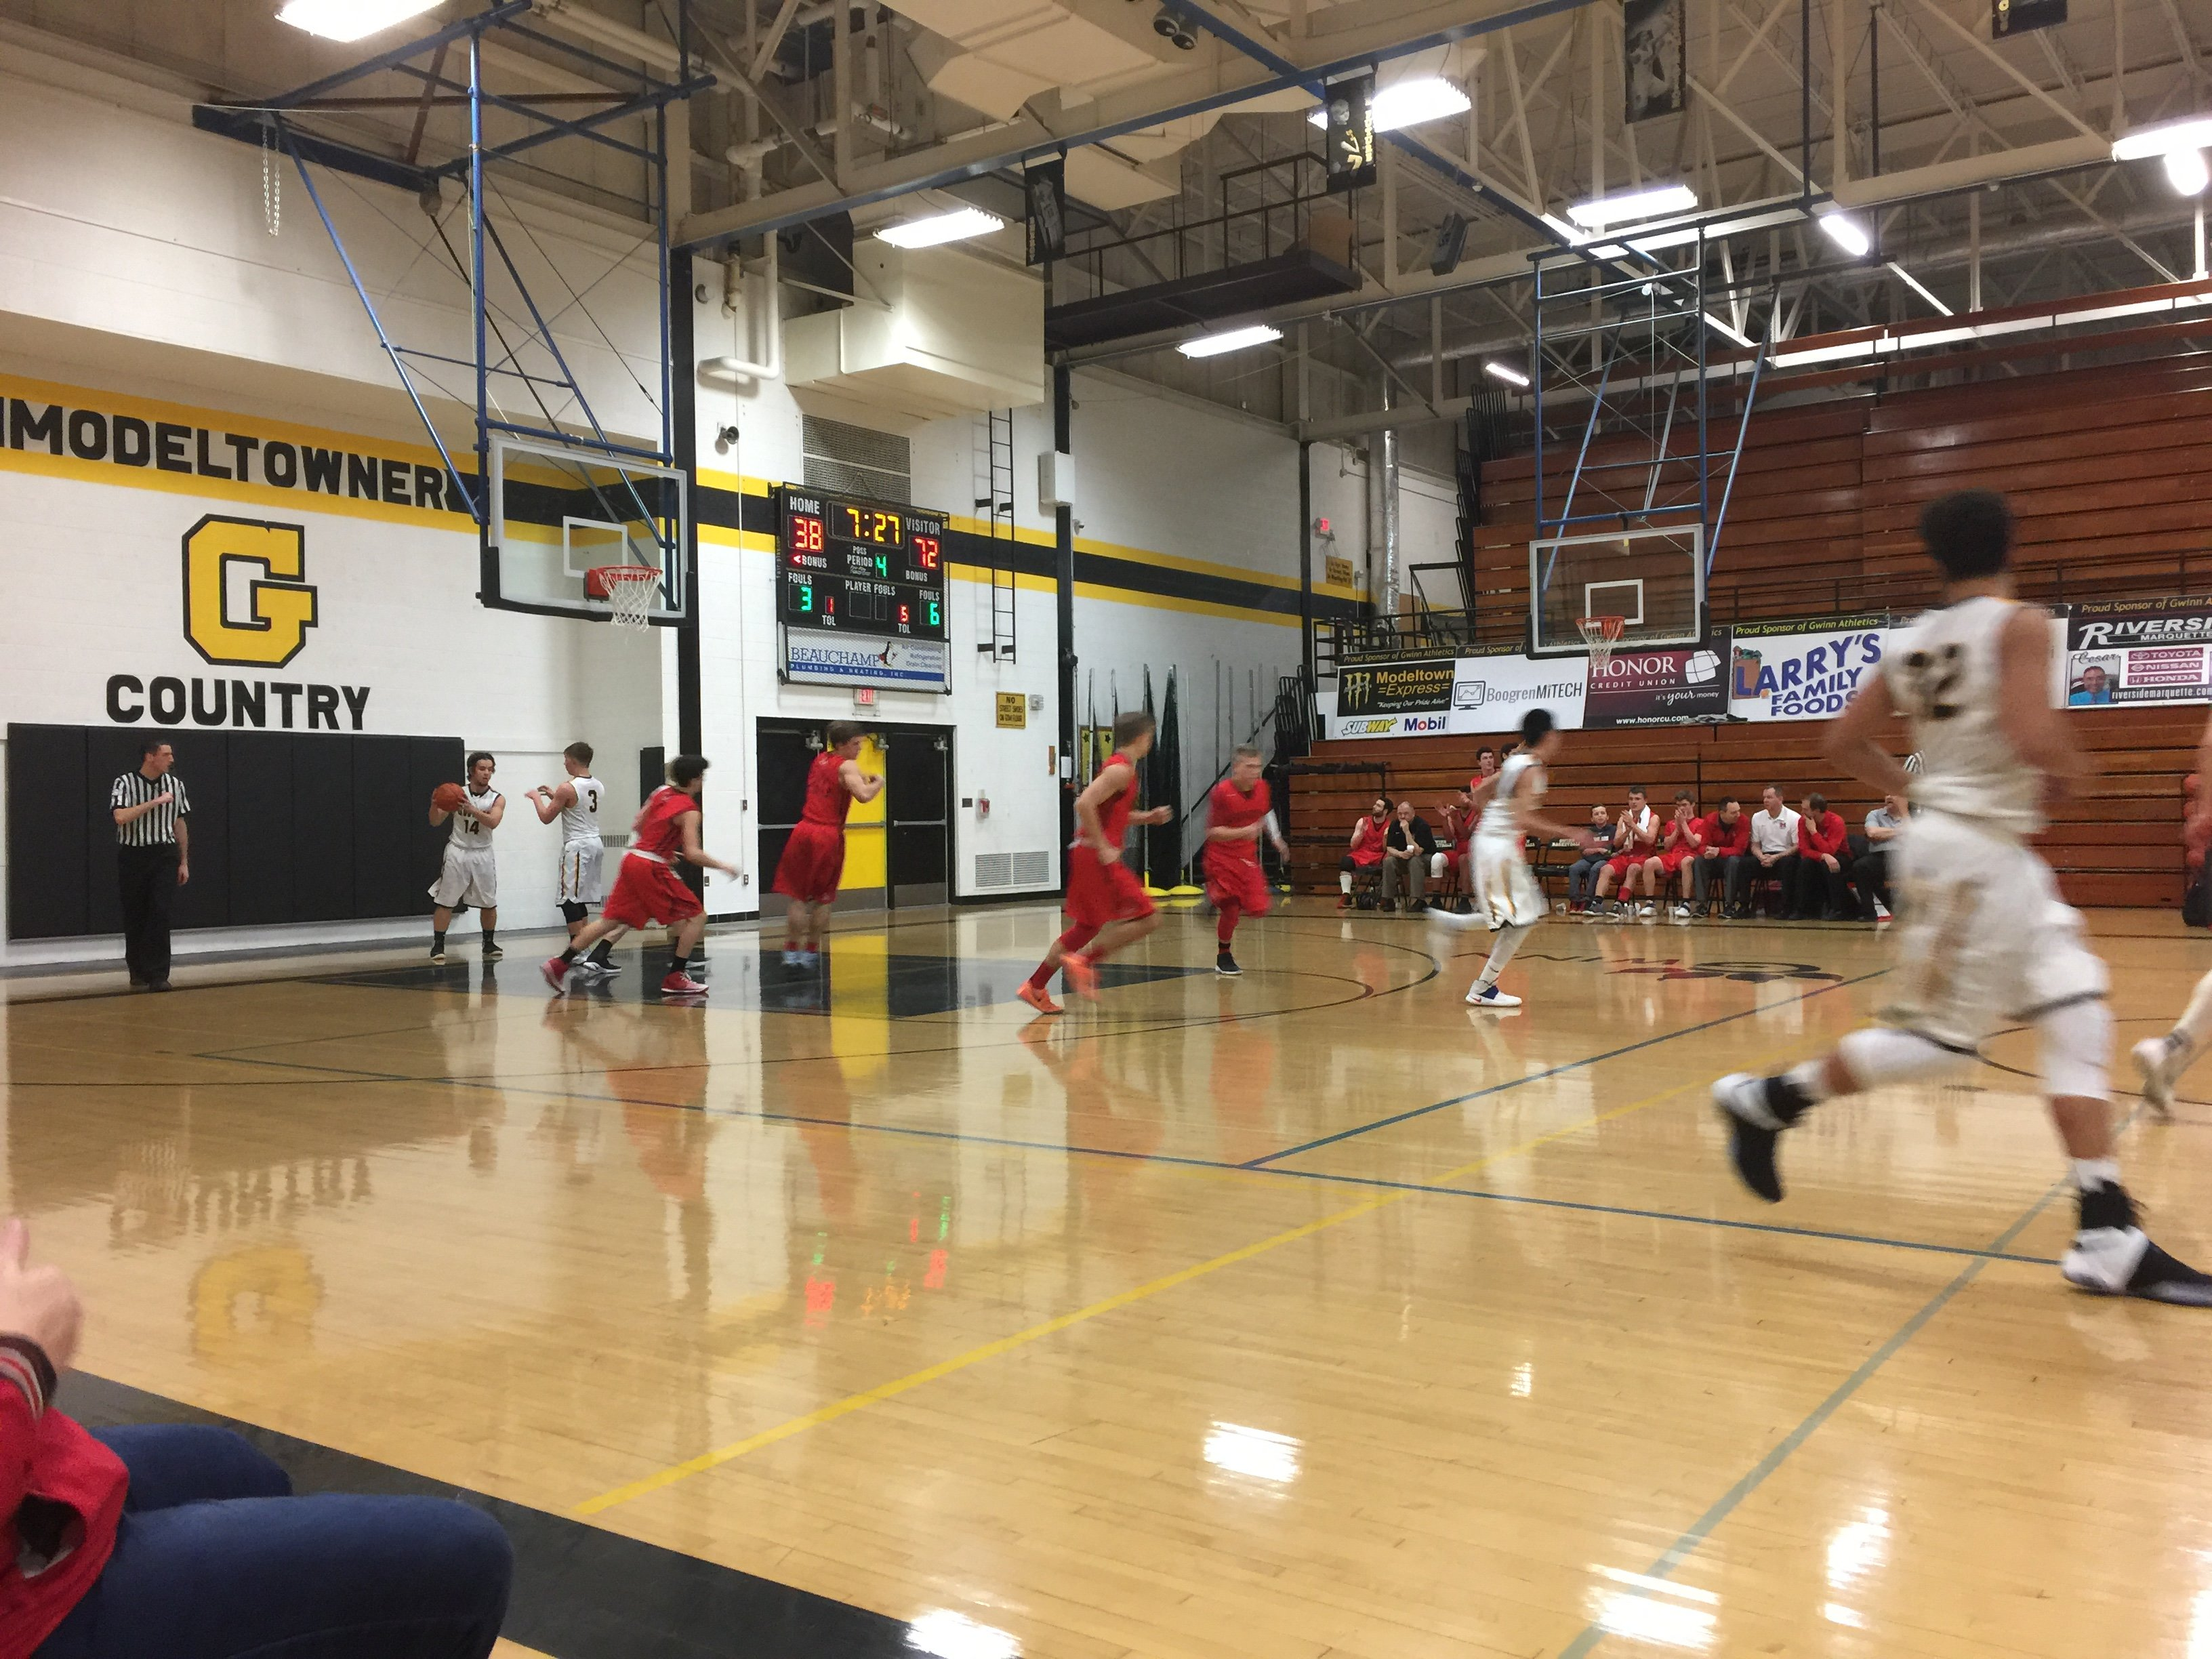 Nice victory from Gwinn as the Marquette Redmen win 87-51 over the Gwinn ModelTowners!